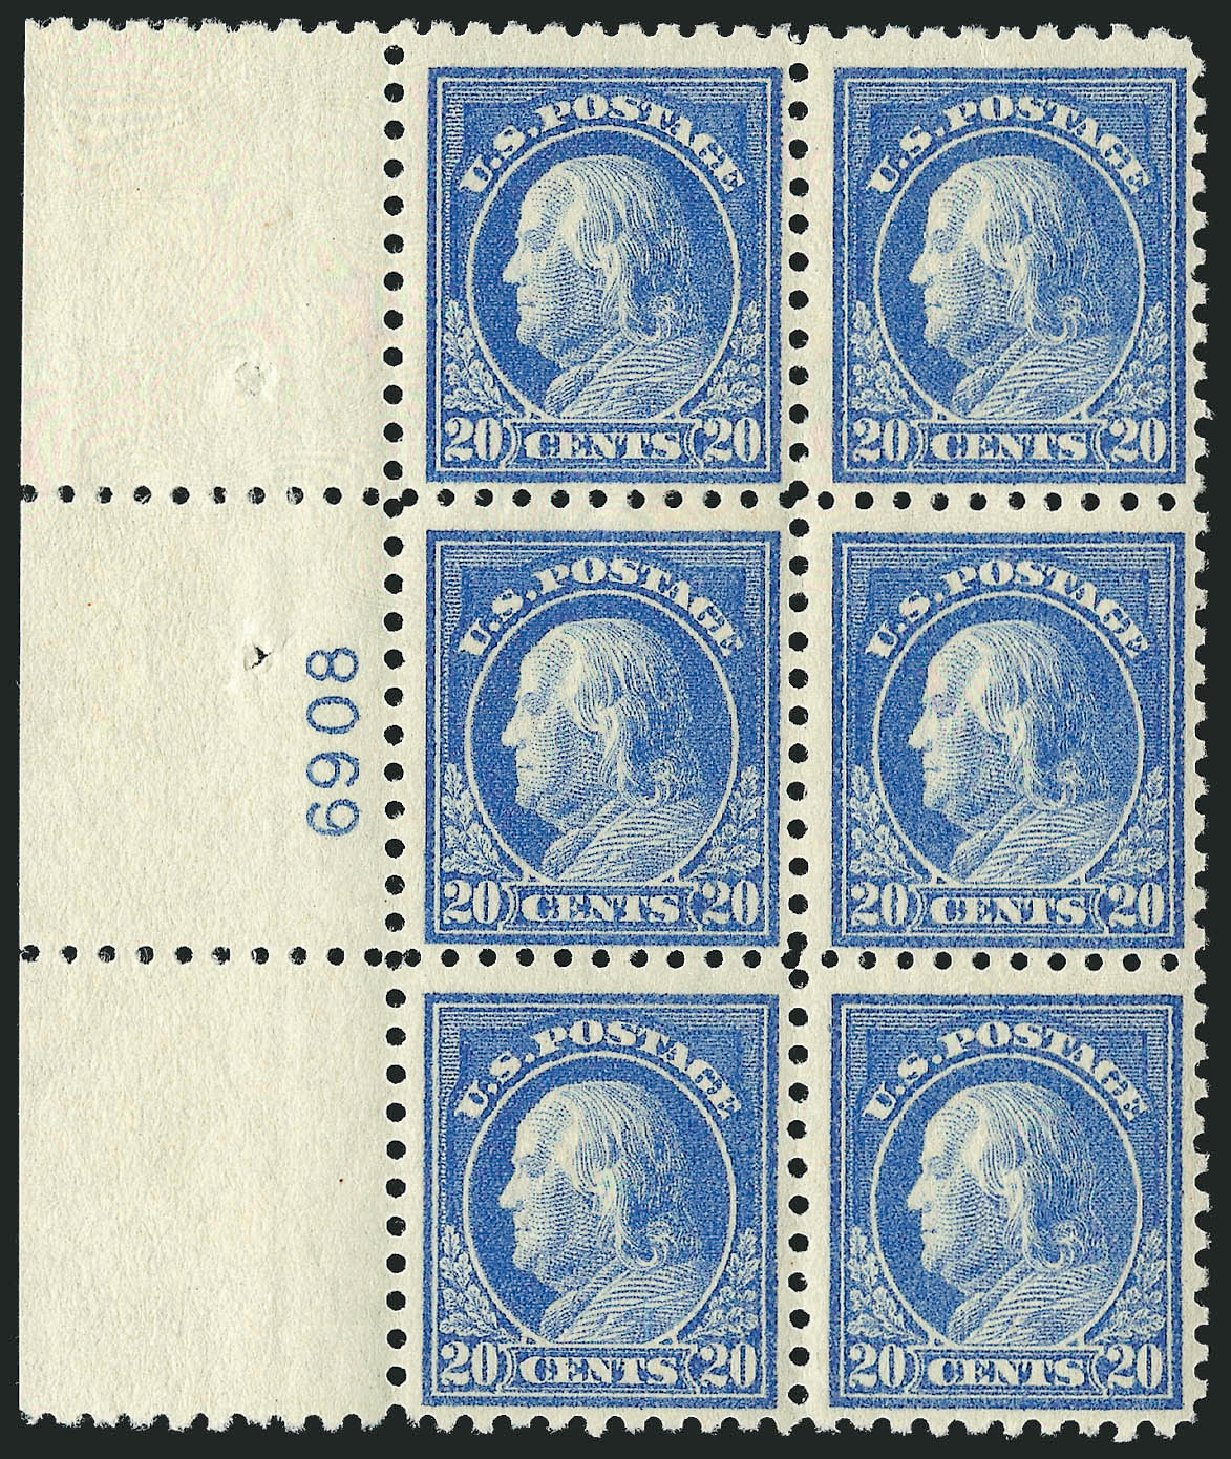 Prices of US Stamp Scott #476 - 1916 20c Franklin Perf 10. Robert Siegel Auction Galleries, Apr 2015, Sale 1096, Lot 723